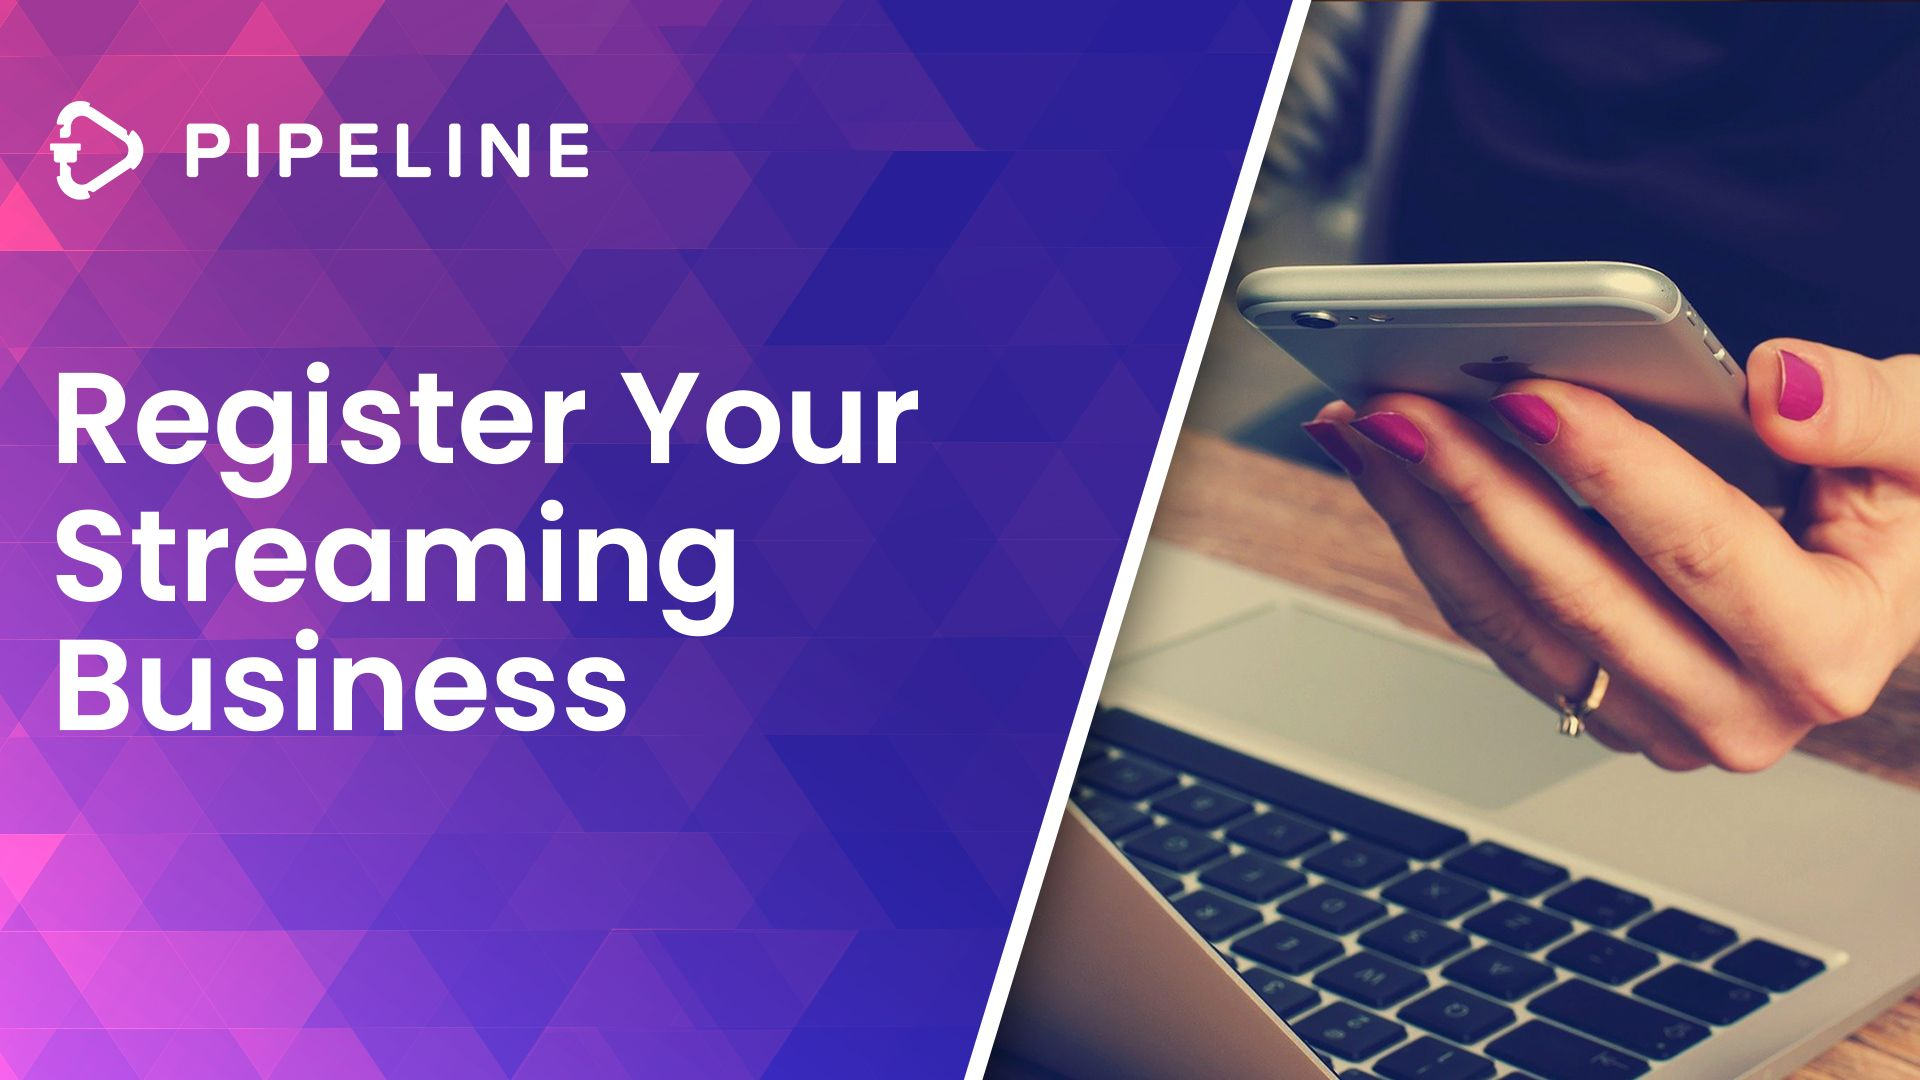 Register Your Streaming Business